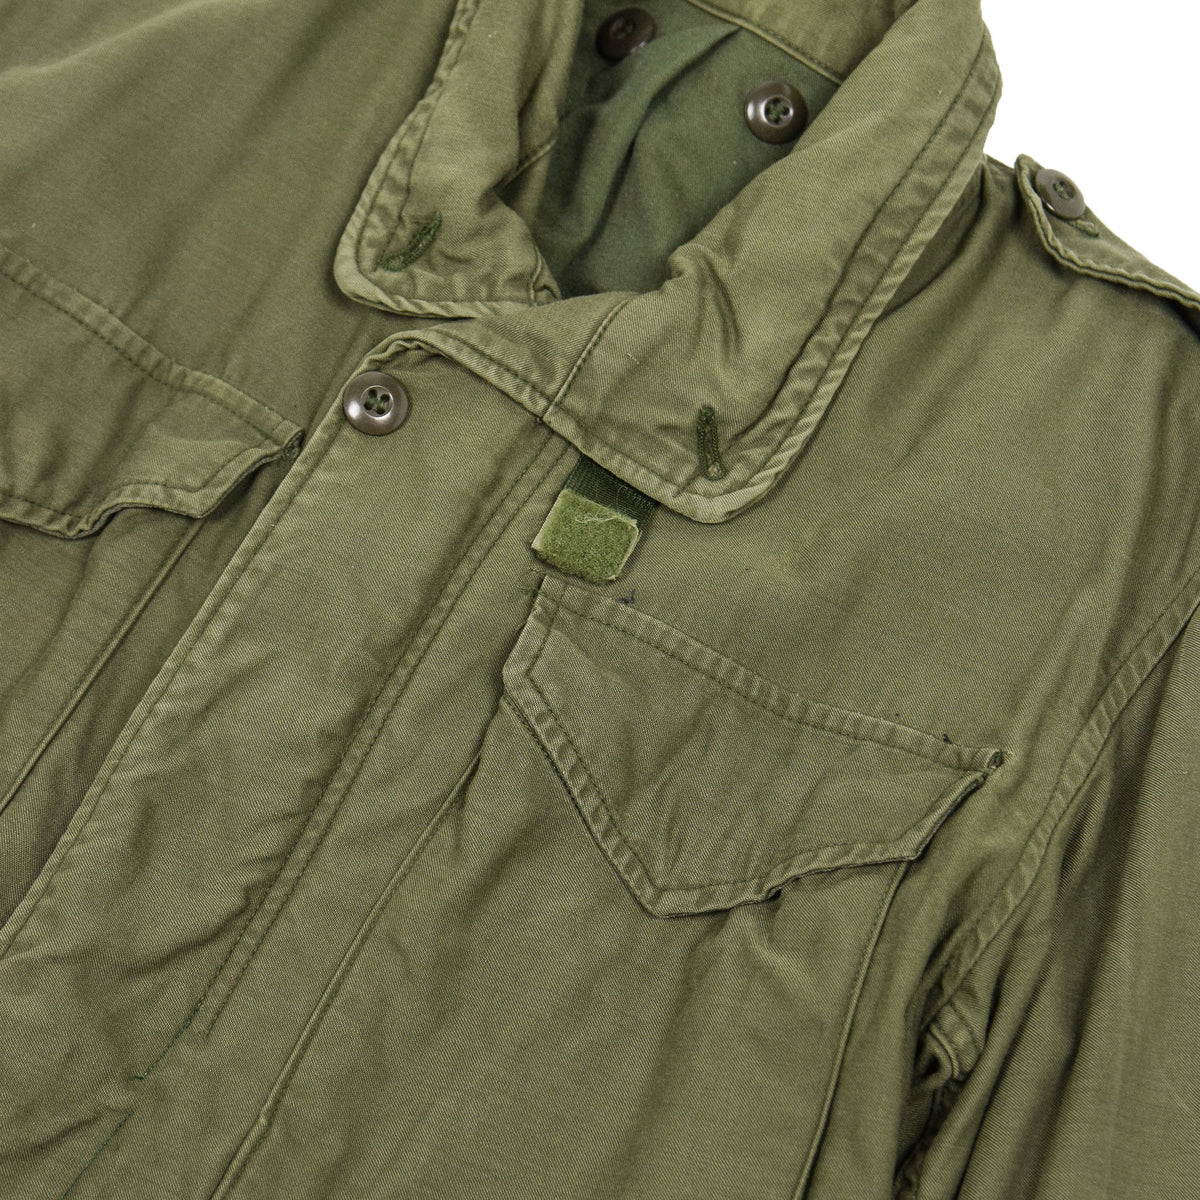 Vintage 60s Vietnam M-65 Man's Field Sateen 0G-107 Green US Army Coat XS detail